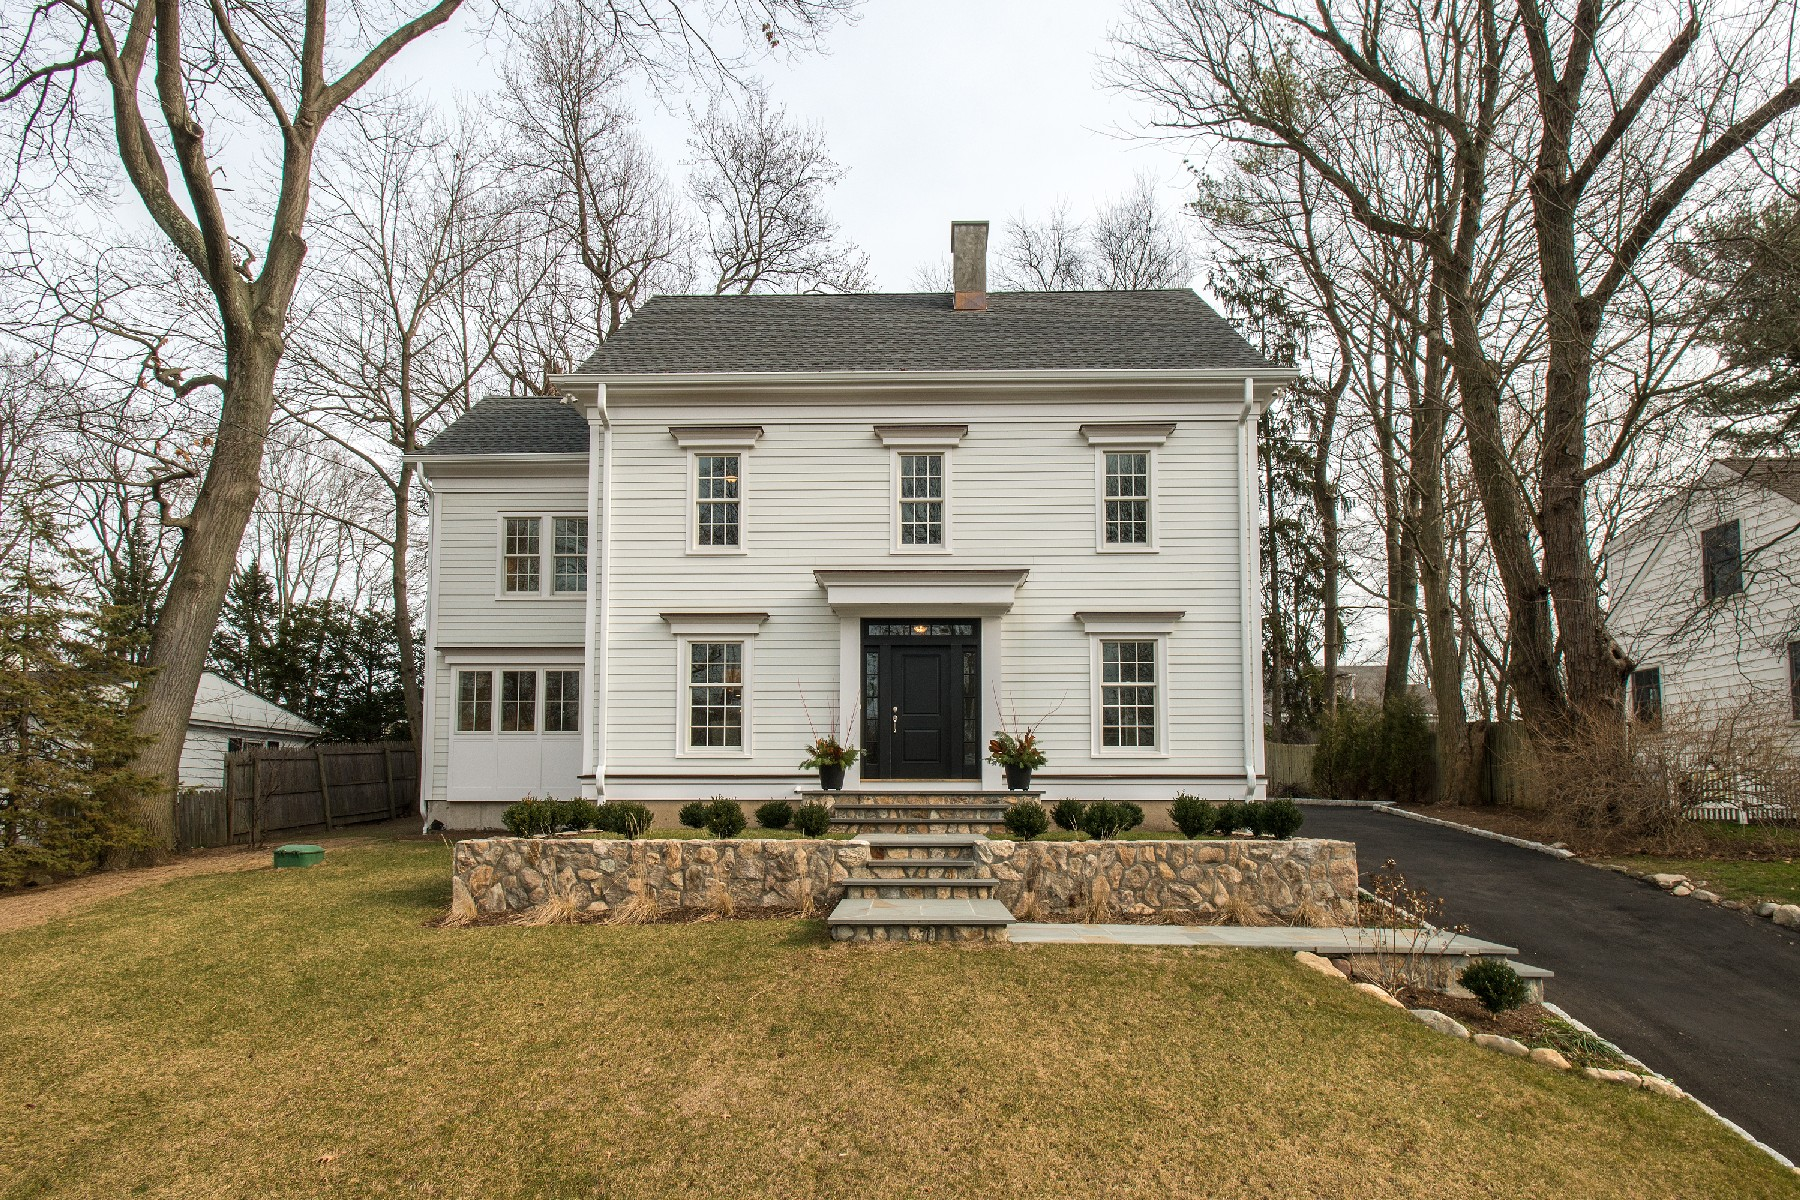 Single Family Home for Sale at Thoughtfully Detailed Space 34 Walmsley Road Darien, Connecticut, 06820 United States